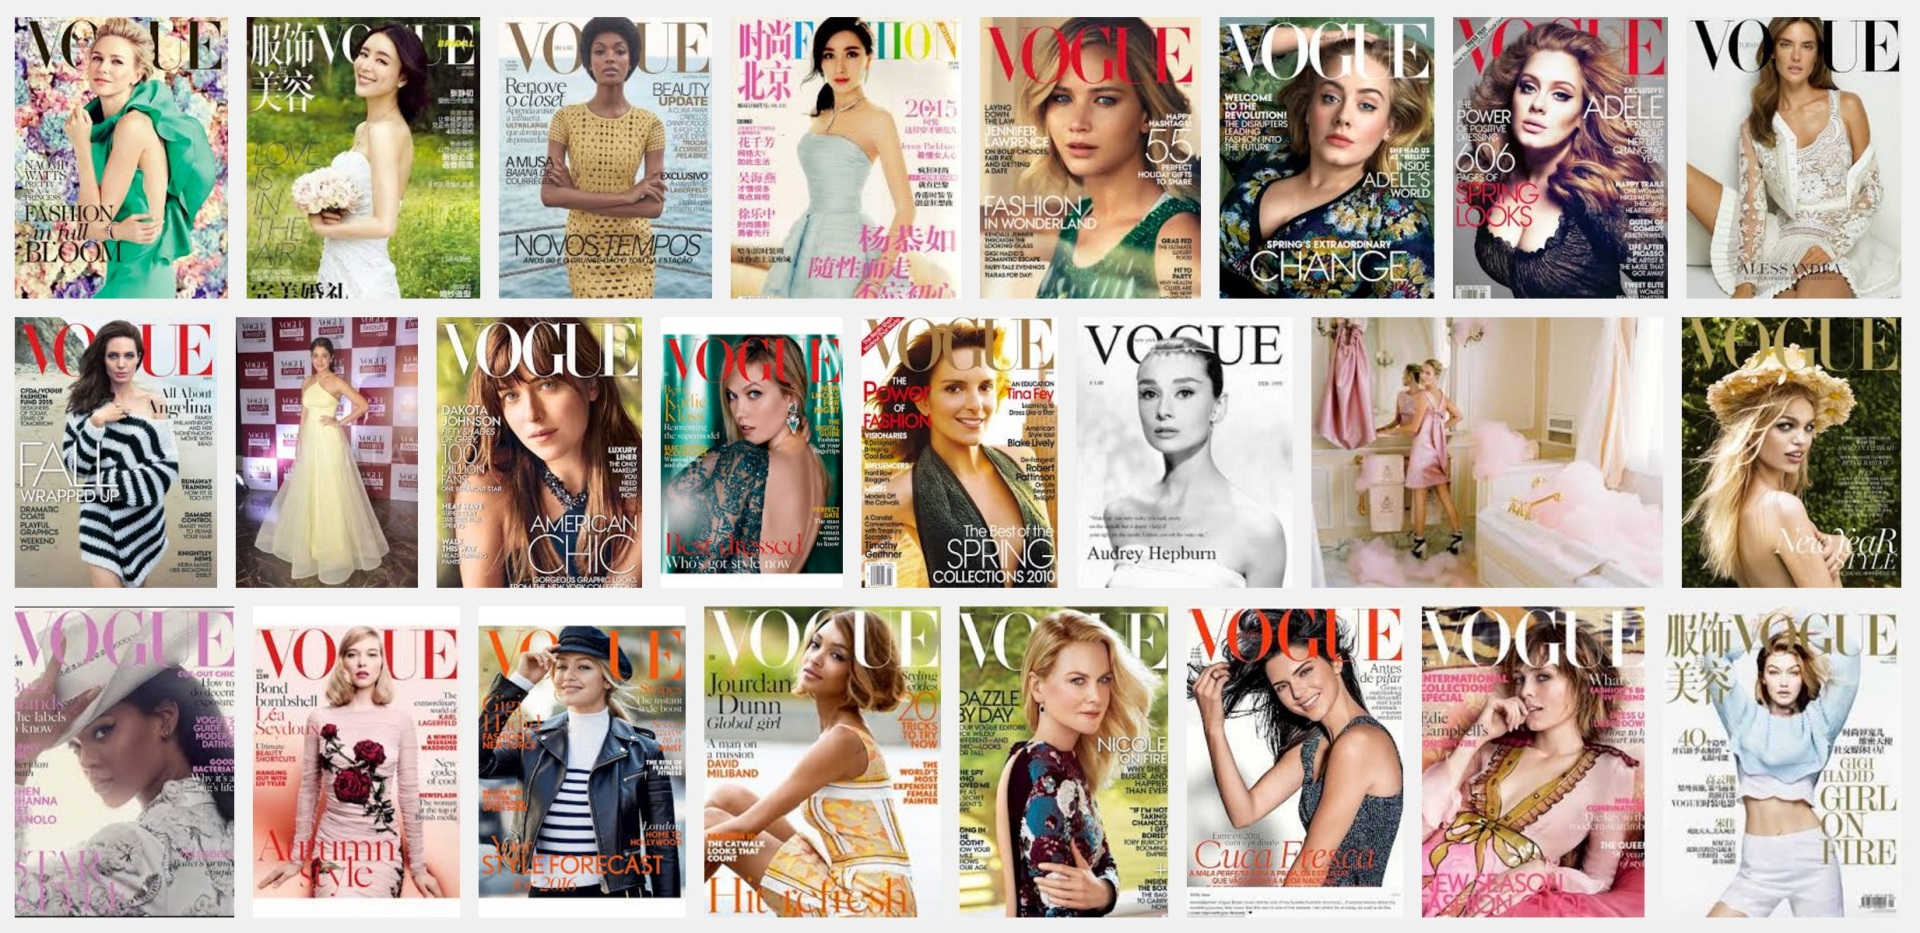 vogue covers.jpg